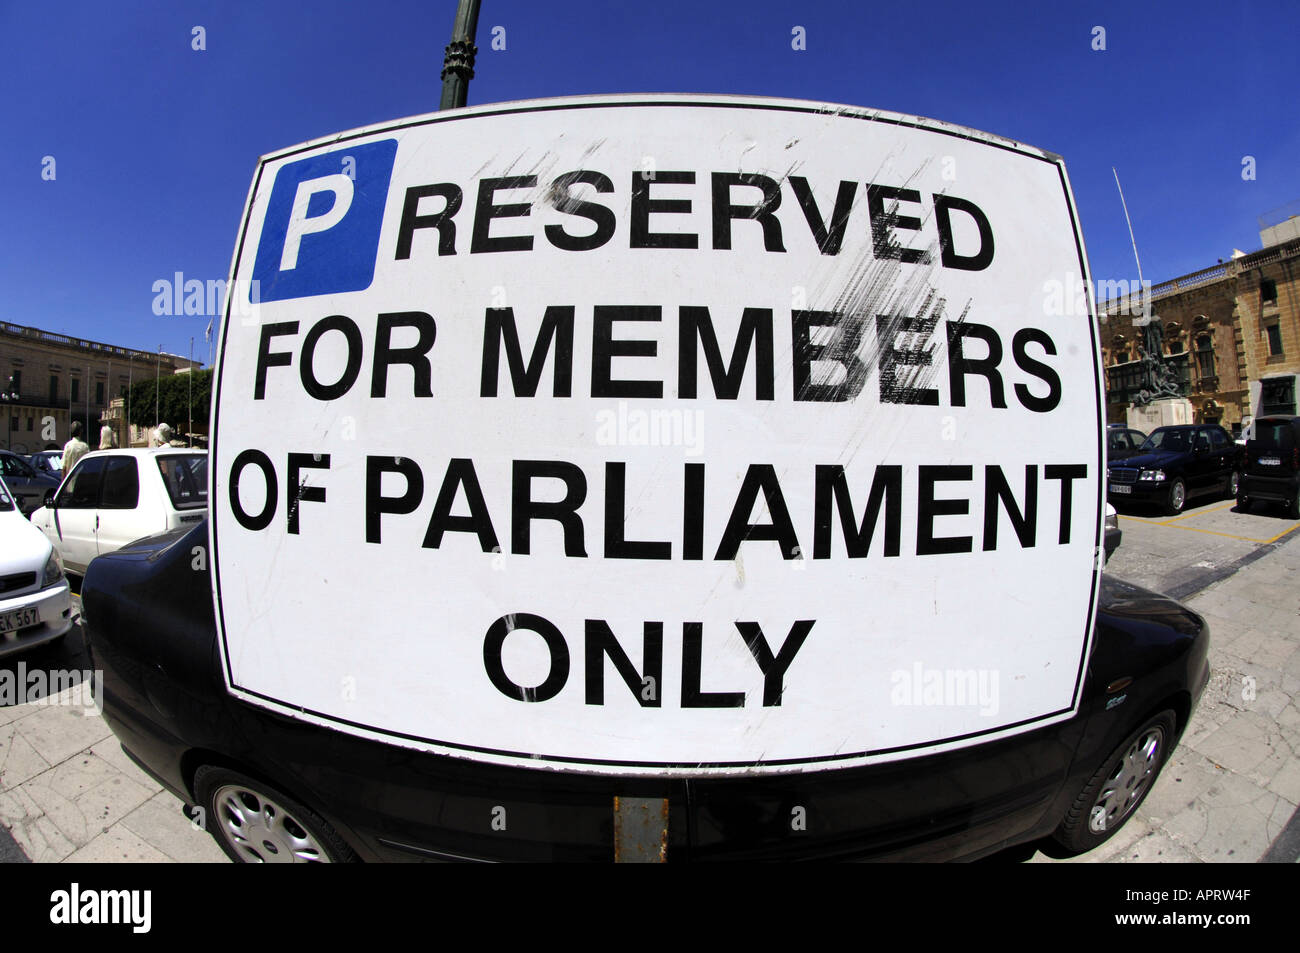 sign, reserved for members of parliament only, elitism, hierachy, elite, - Stock Image